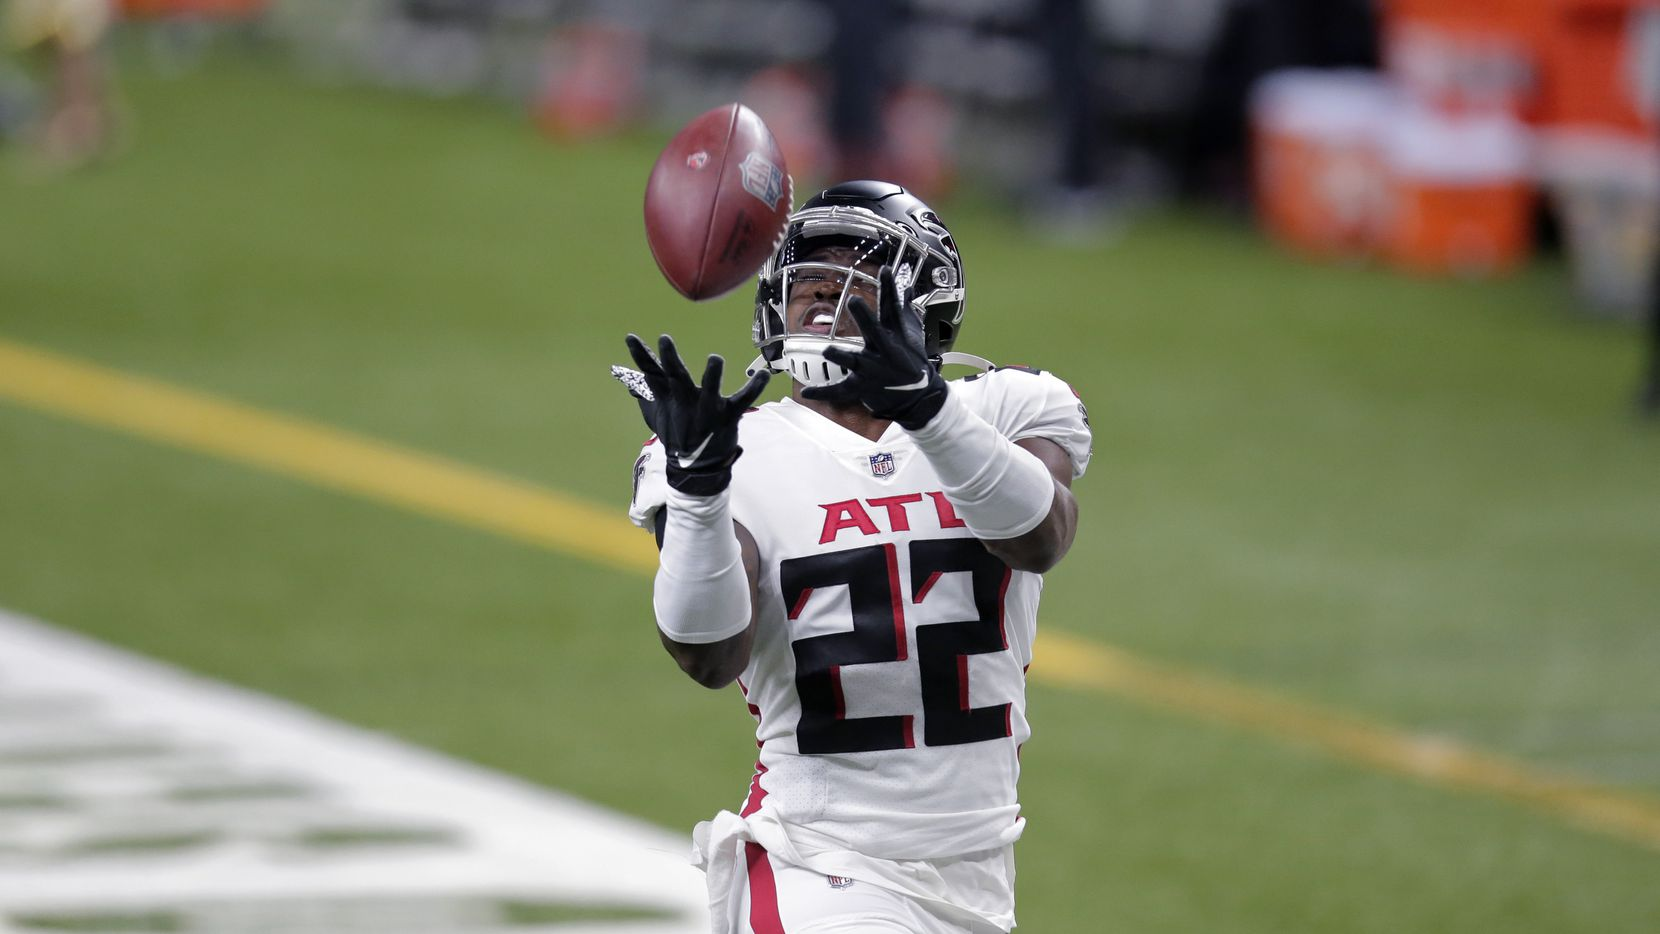 Atlanta Falcons strong safety Keanu Neal (22) warms up before an NFL football game against the New Orleans Saints in New Orleans, Sunday, Nov. 22, 2020.